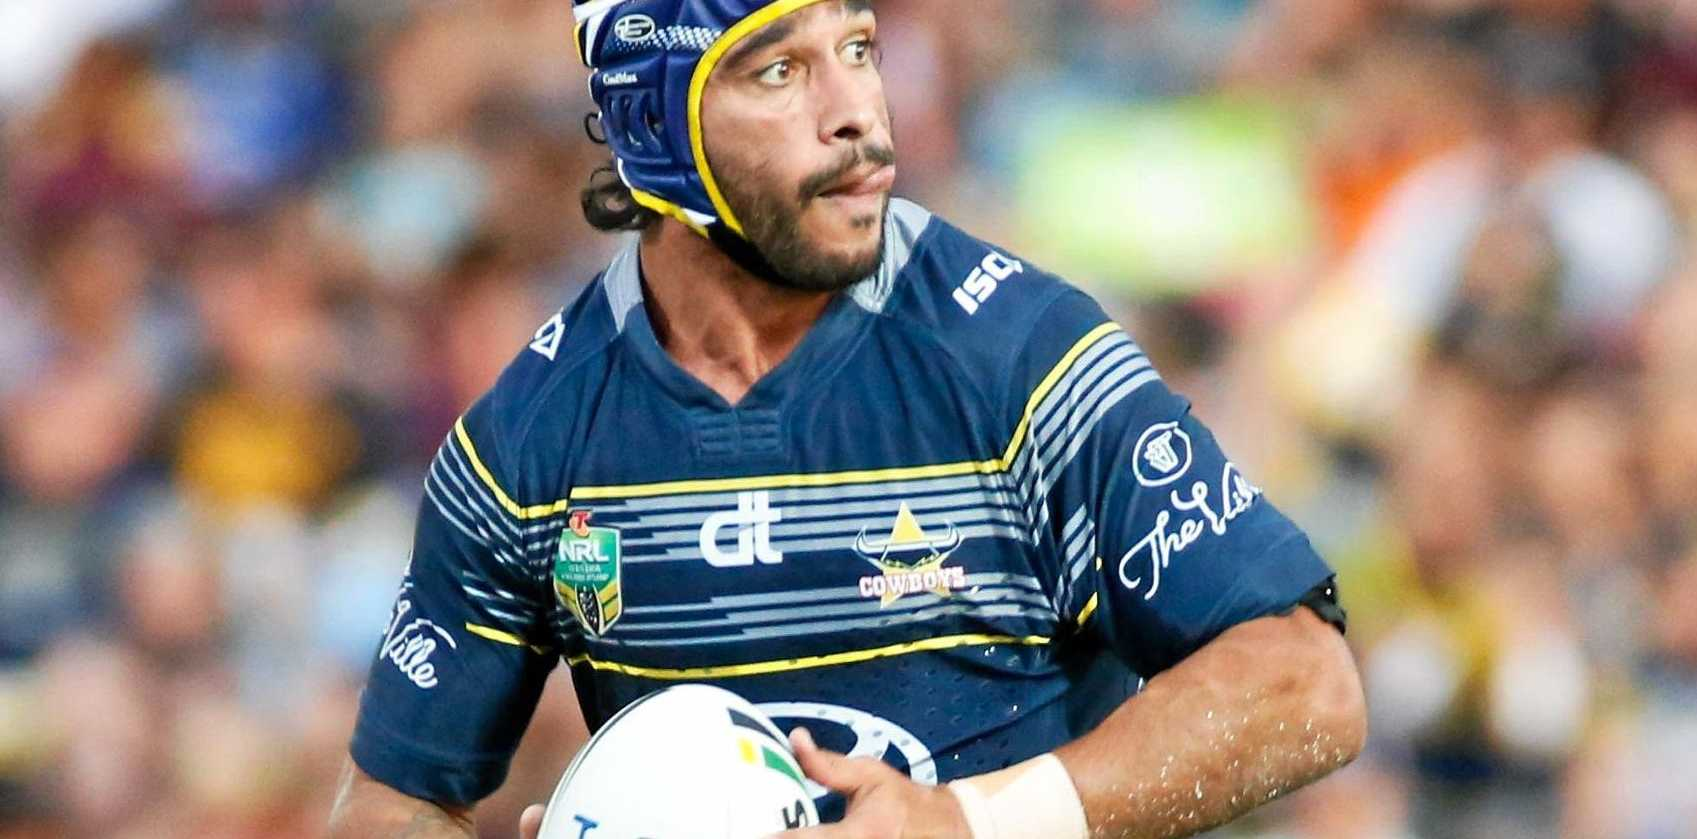 Thurston has missed the back half of the season with a shoulder injury.